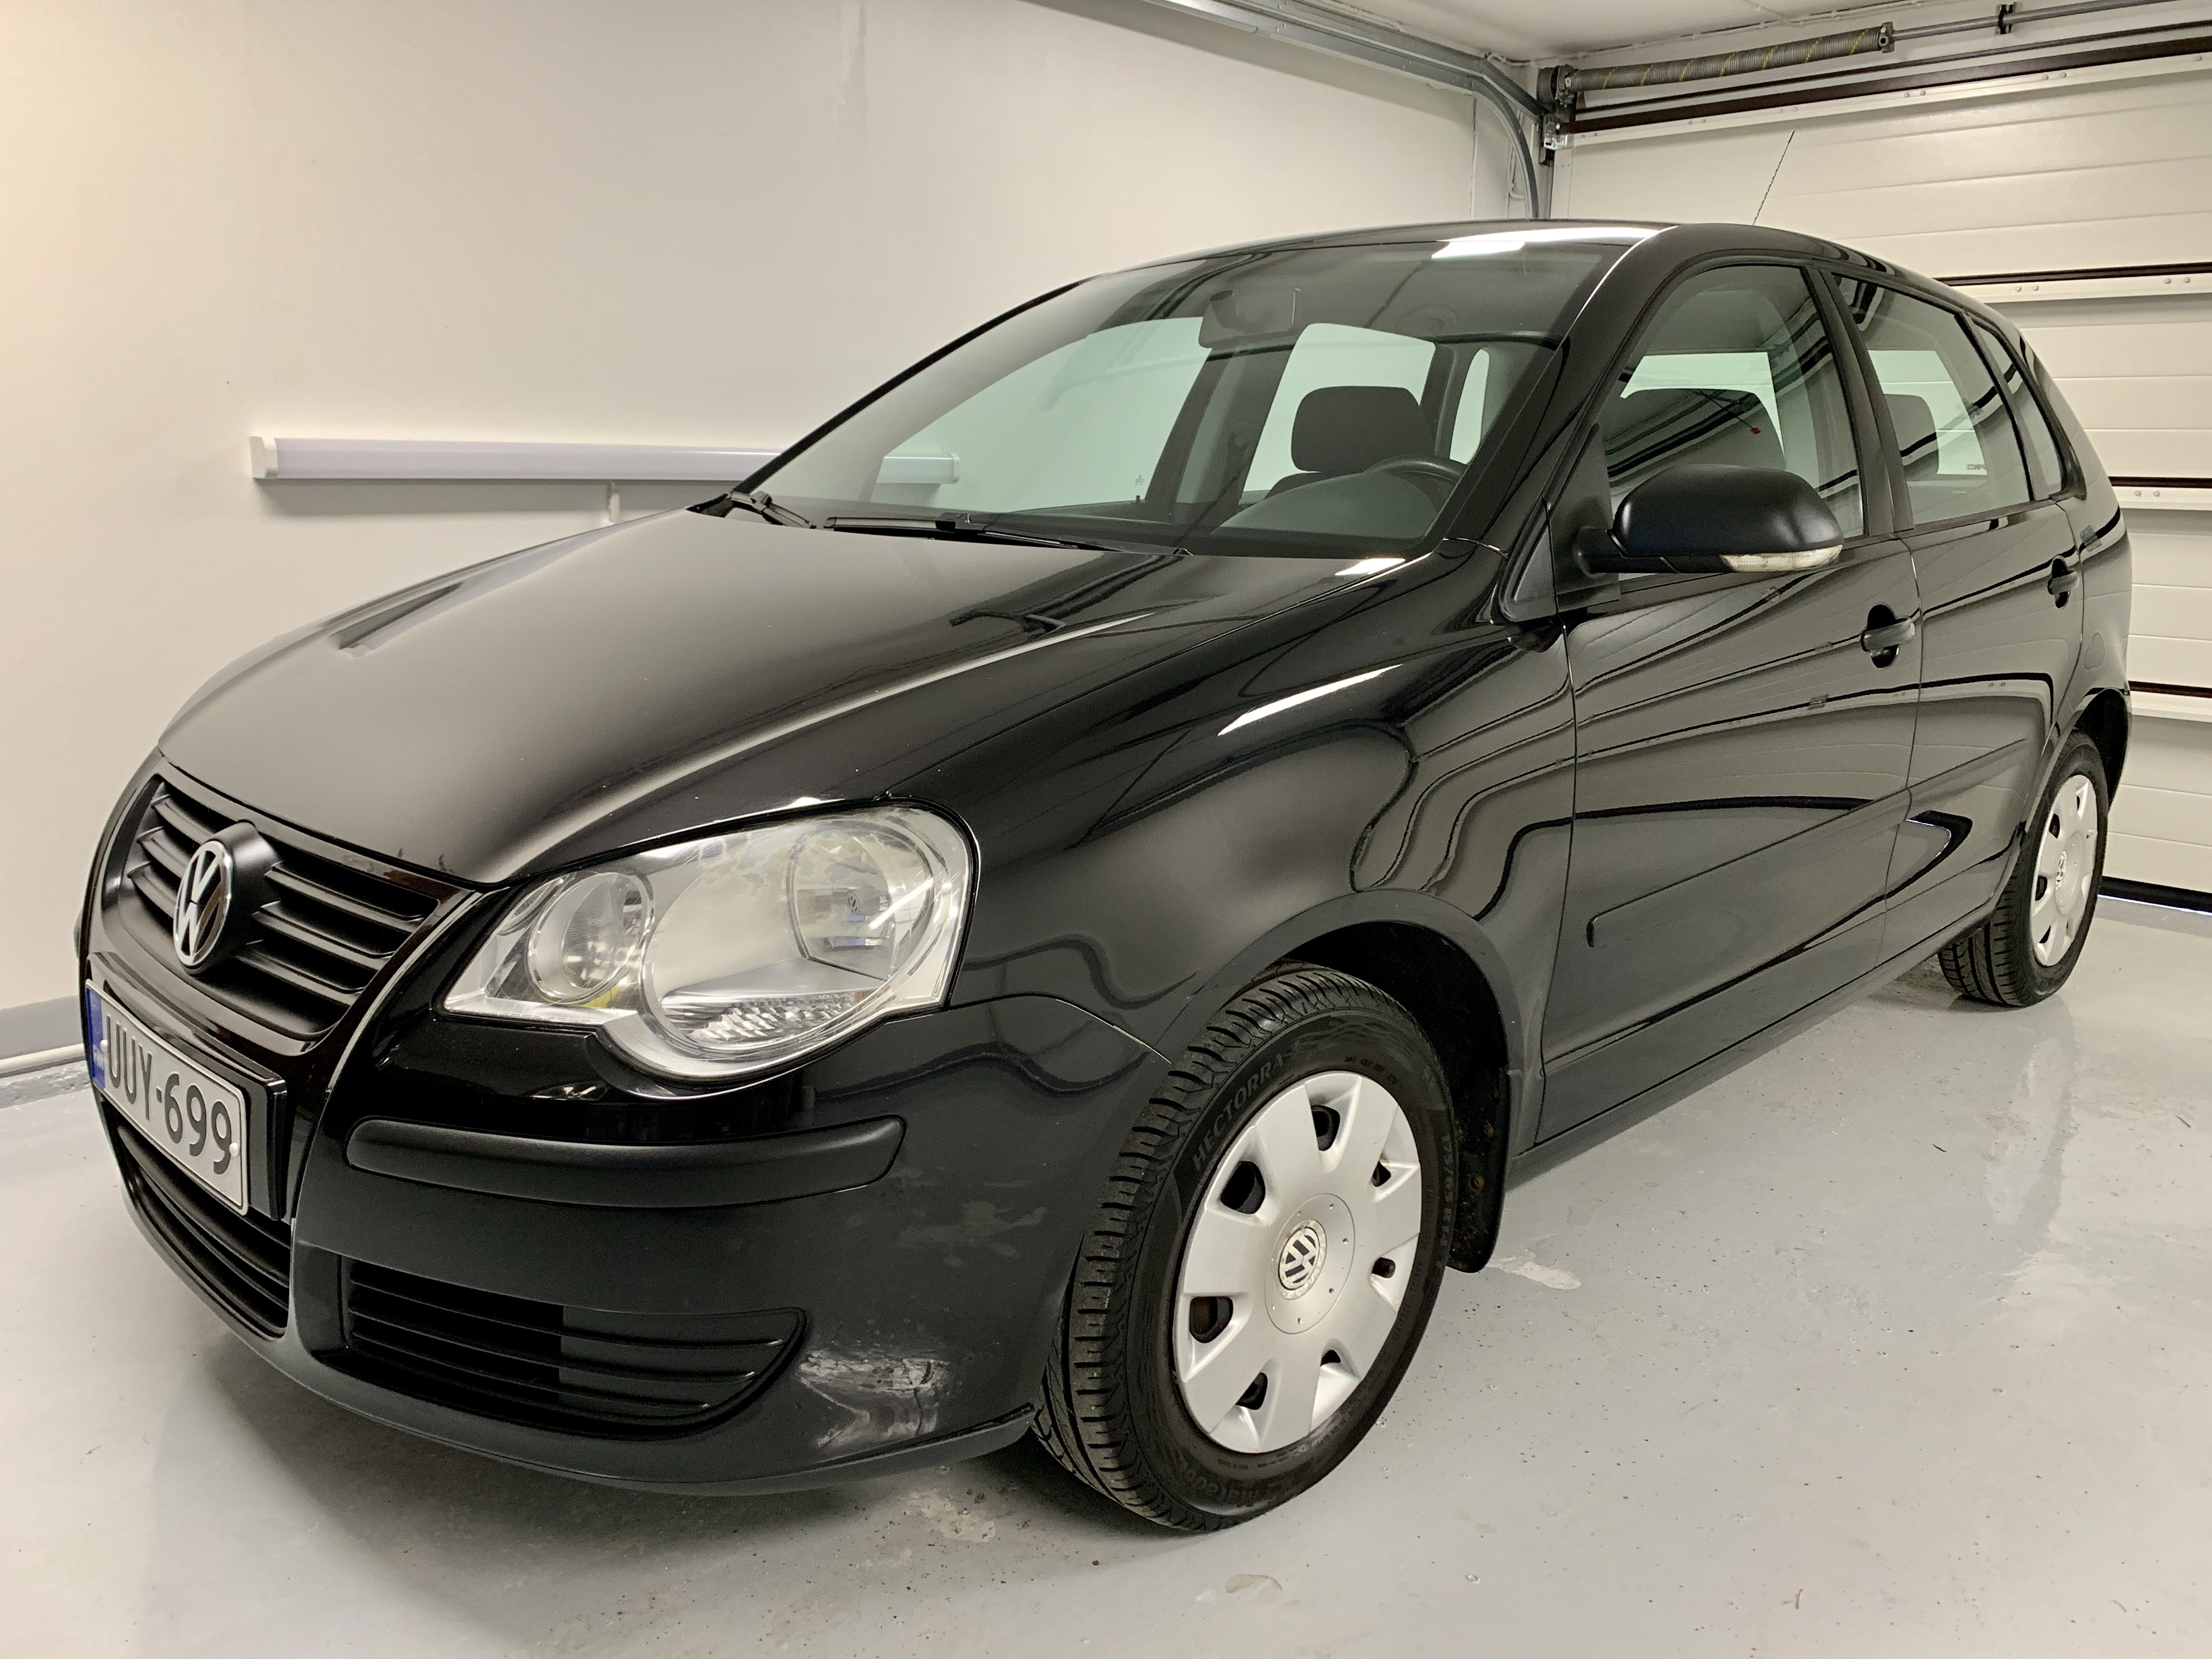 VW Polo 1.4i Trend Black Edition